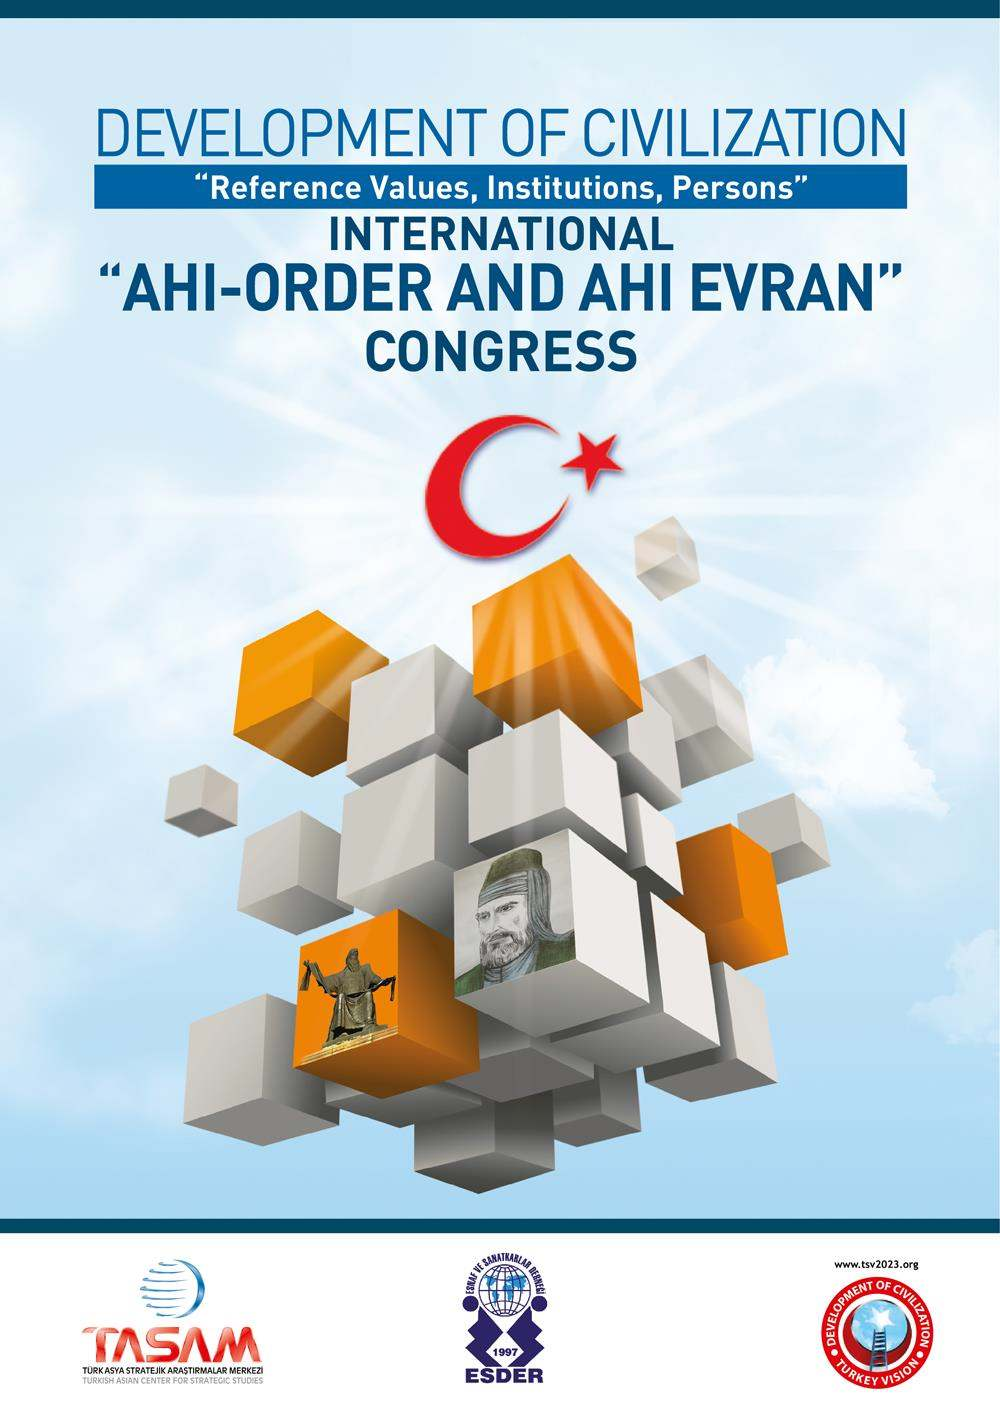 International Ahi-order and Ahi Evran Congress